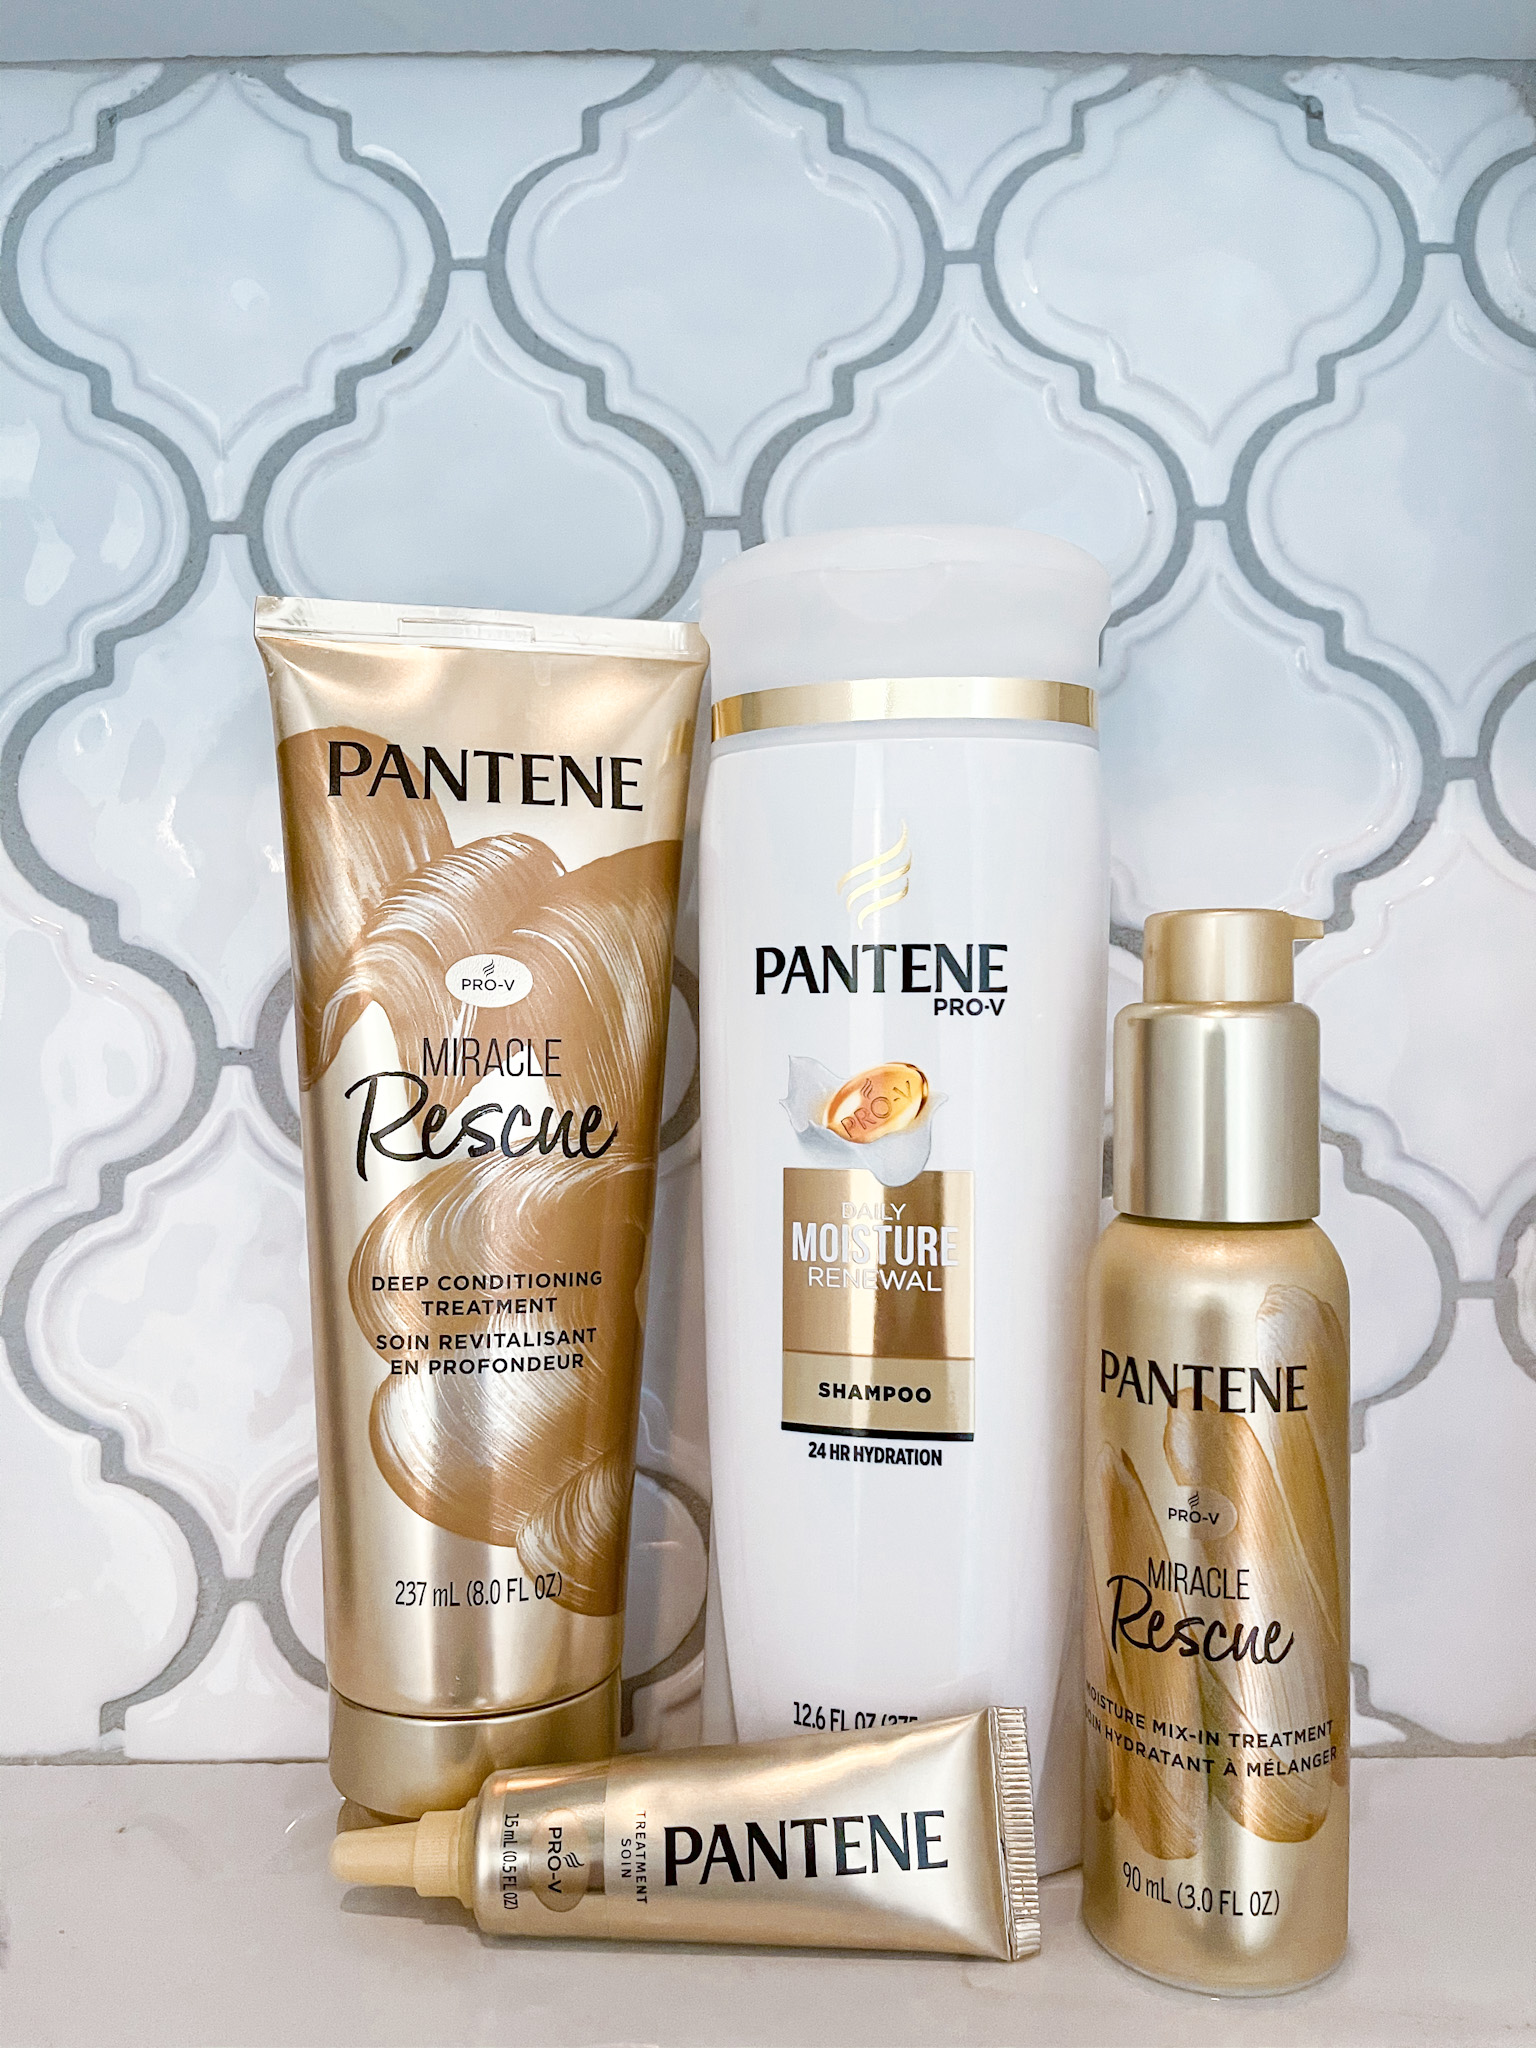 IMG 6380 - Pantene Pro-V Miracle Rescue Collection